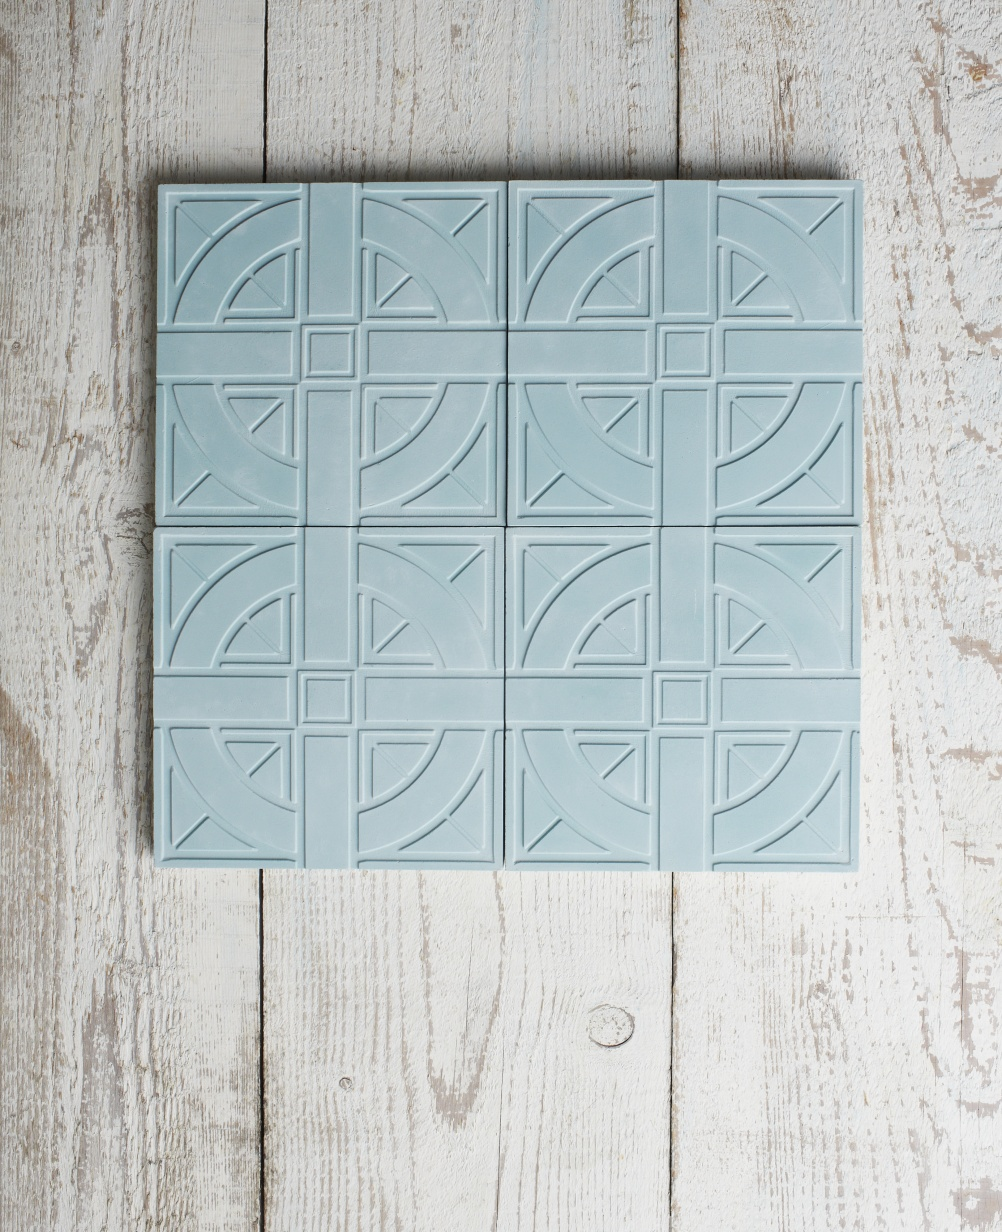 London Underground inspired cement tiles, by Lindsey Lang